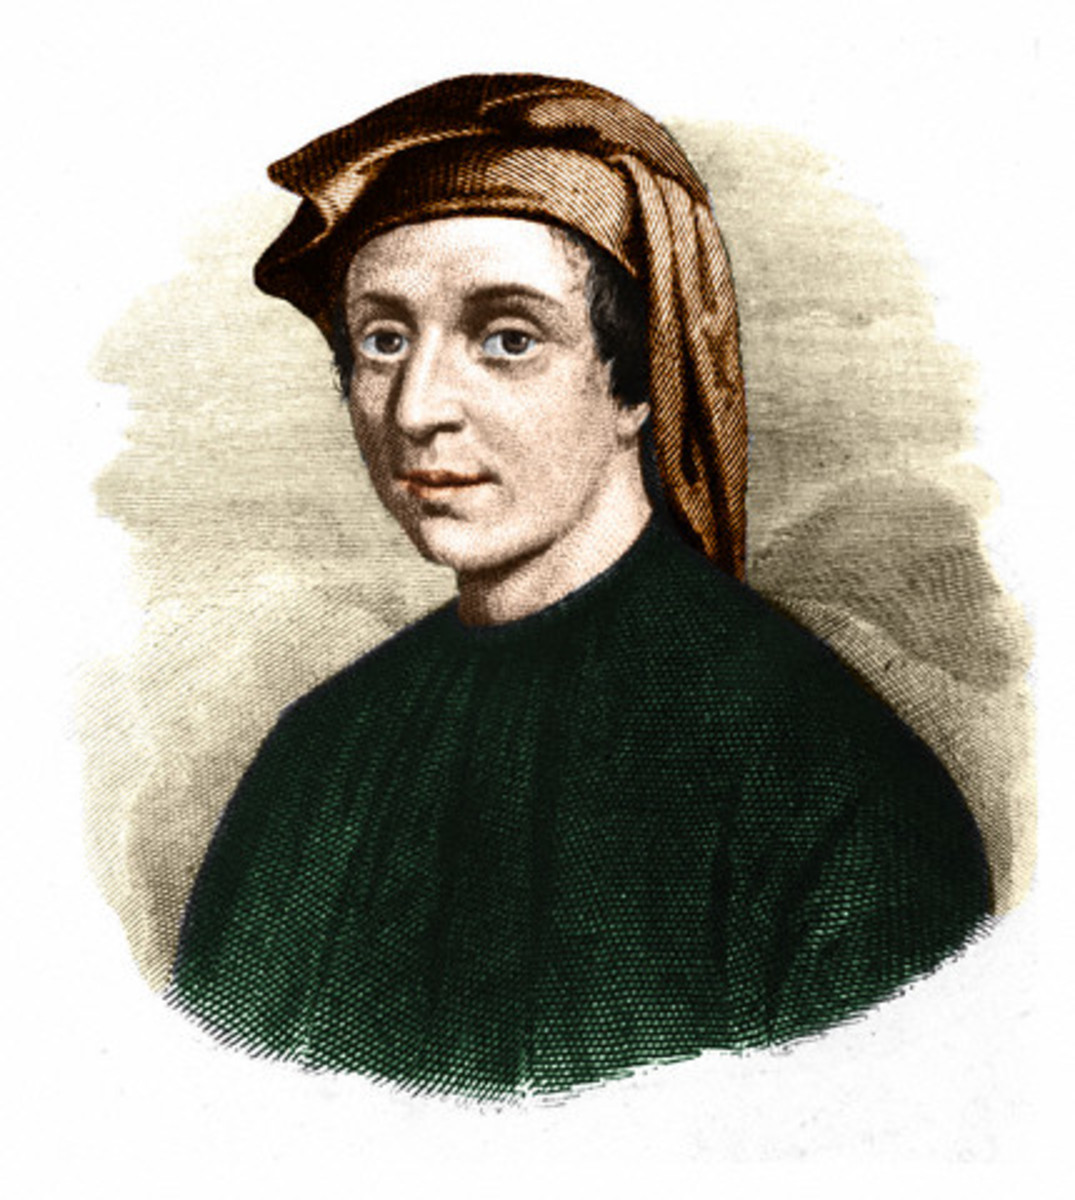 Fig. 2. Portrait of Leonardo Fibonacci (c.1170-c.1250), an Italian mathematician. Nowadays Fibonacci is best known for the number sequence named after him and for spreading Arabic numerical system.